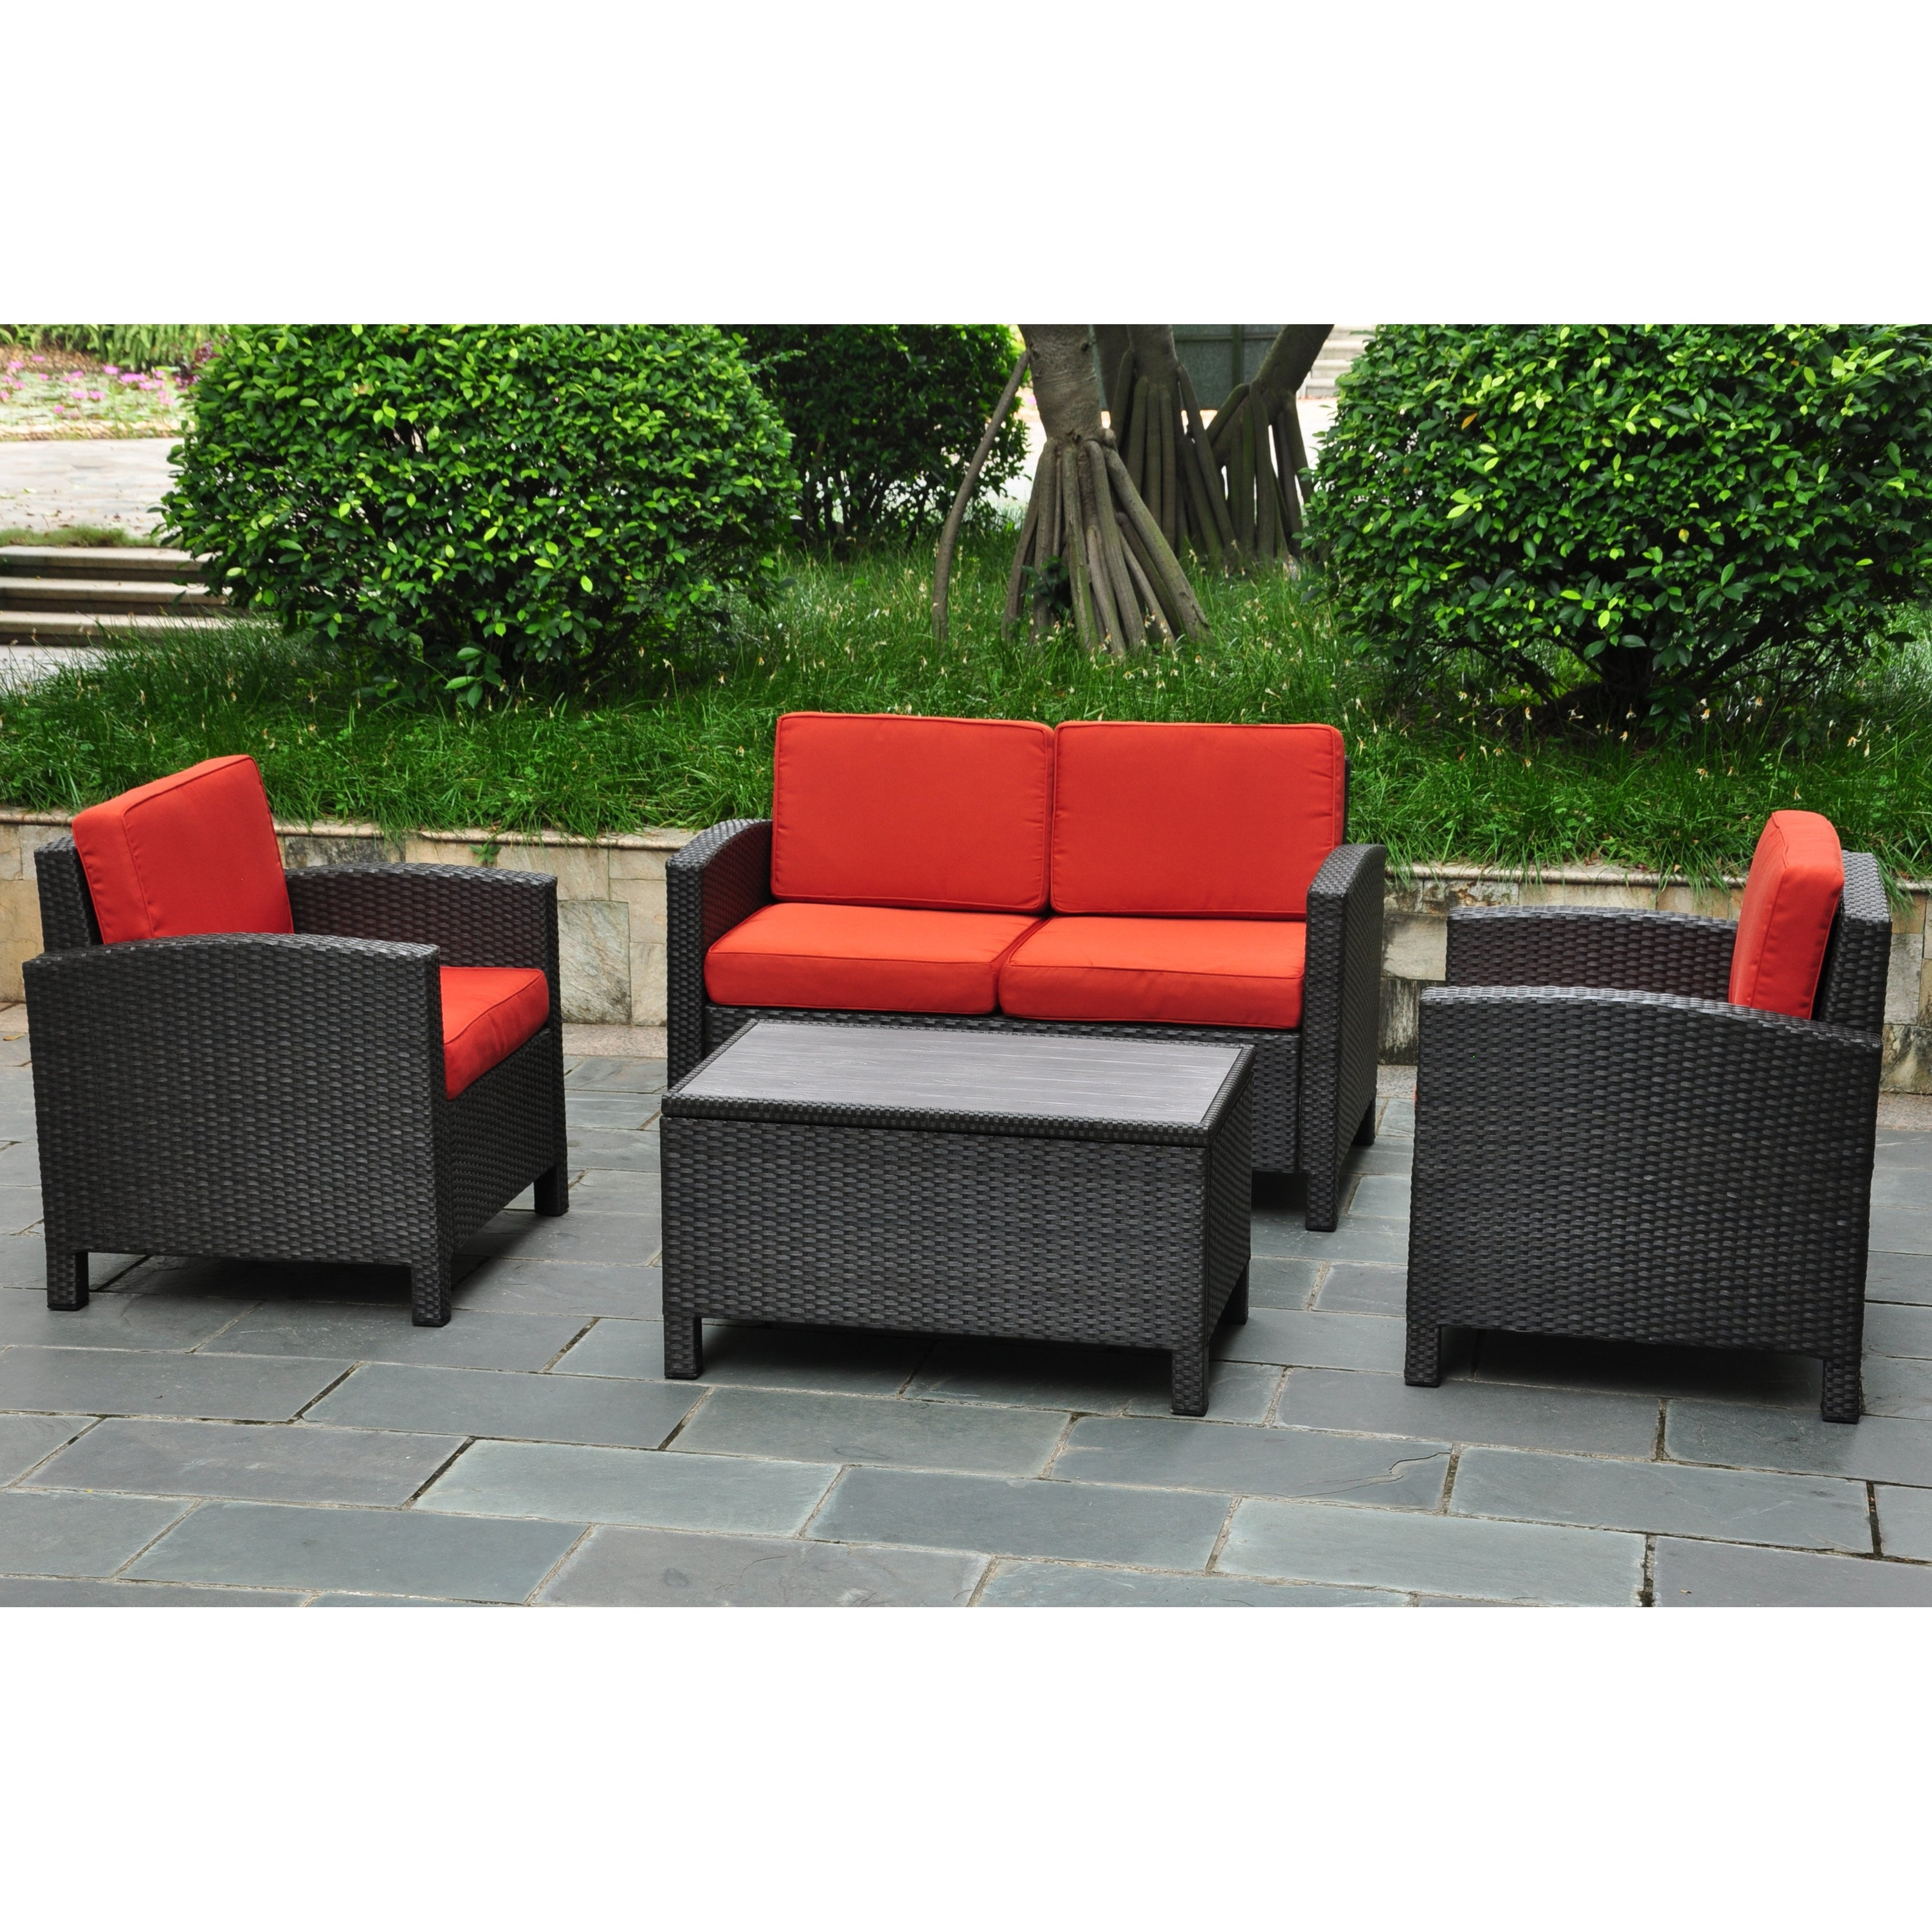 Patio Conversation Sets With Storage For Well Known International Caravan Barcelona Resin Wicker Outdoor Patio Set With (View 11 of 20)